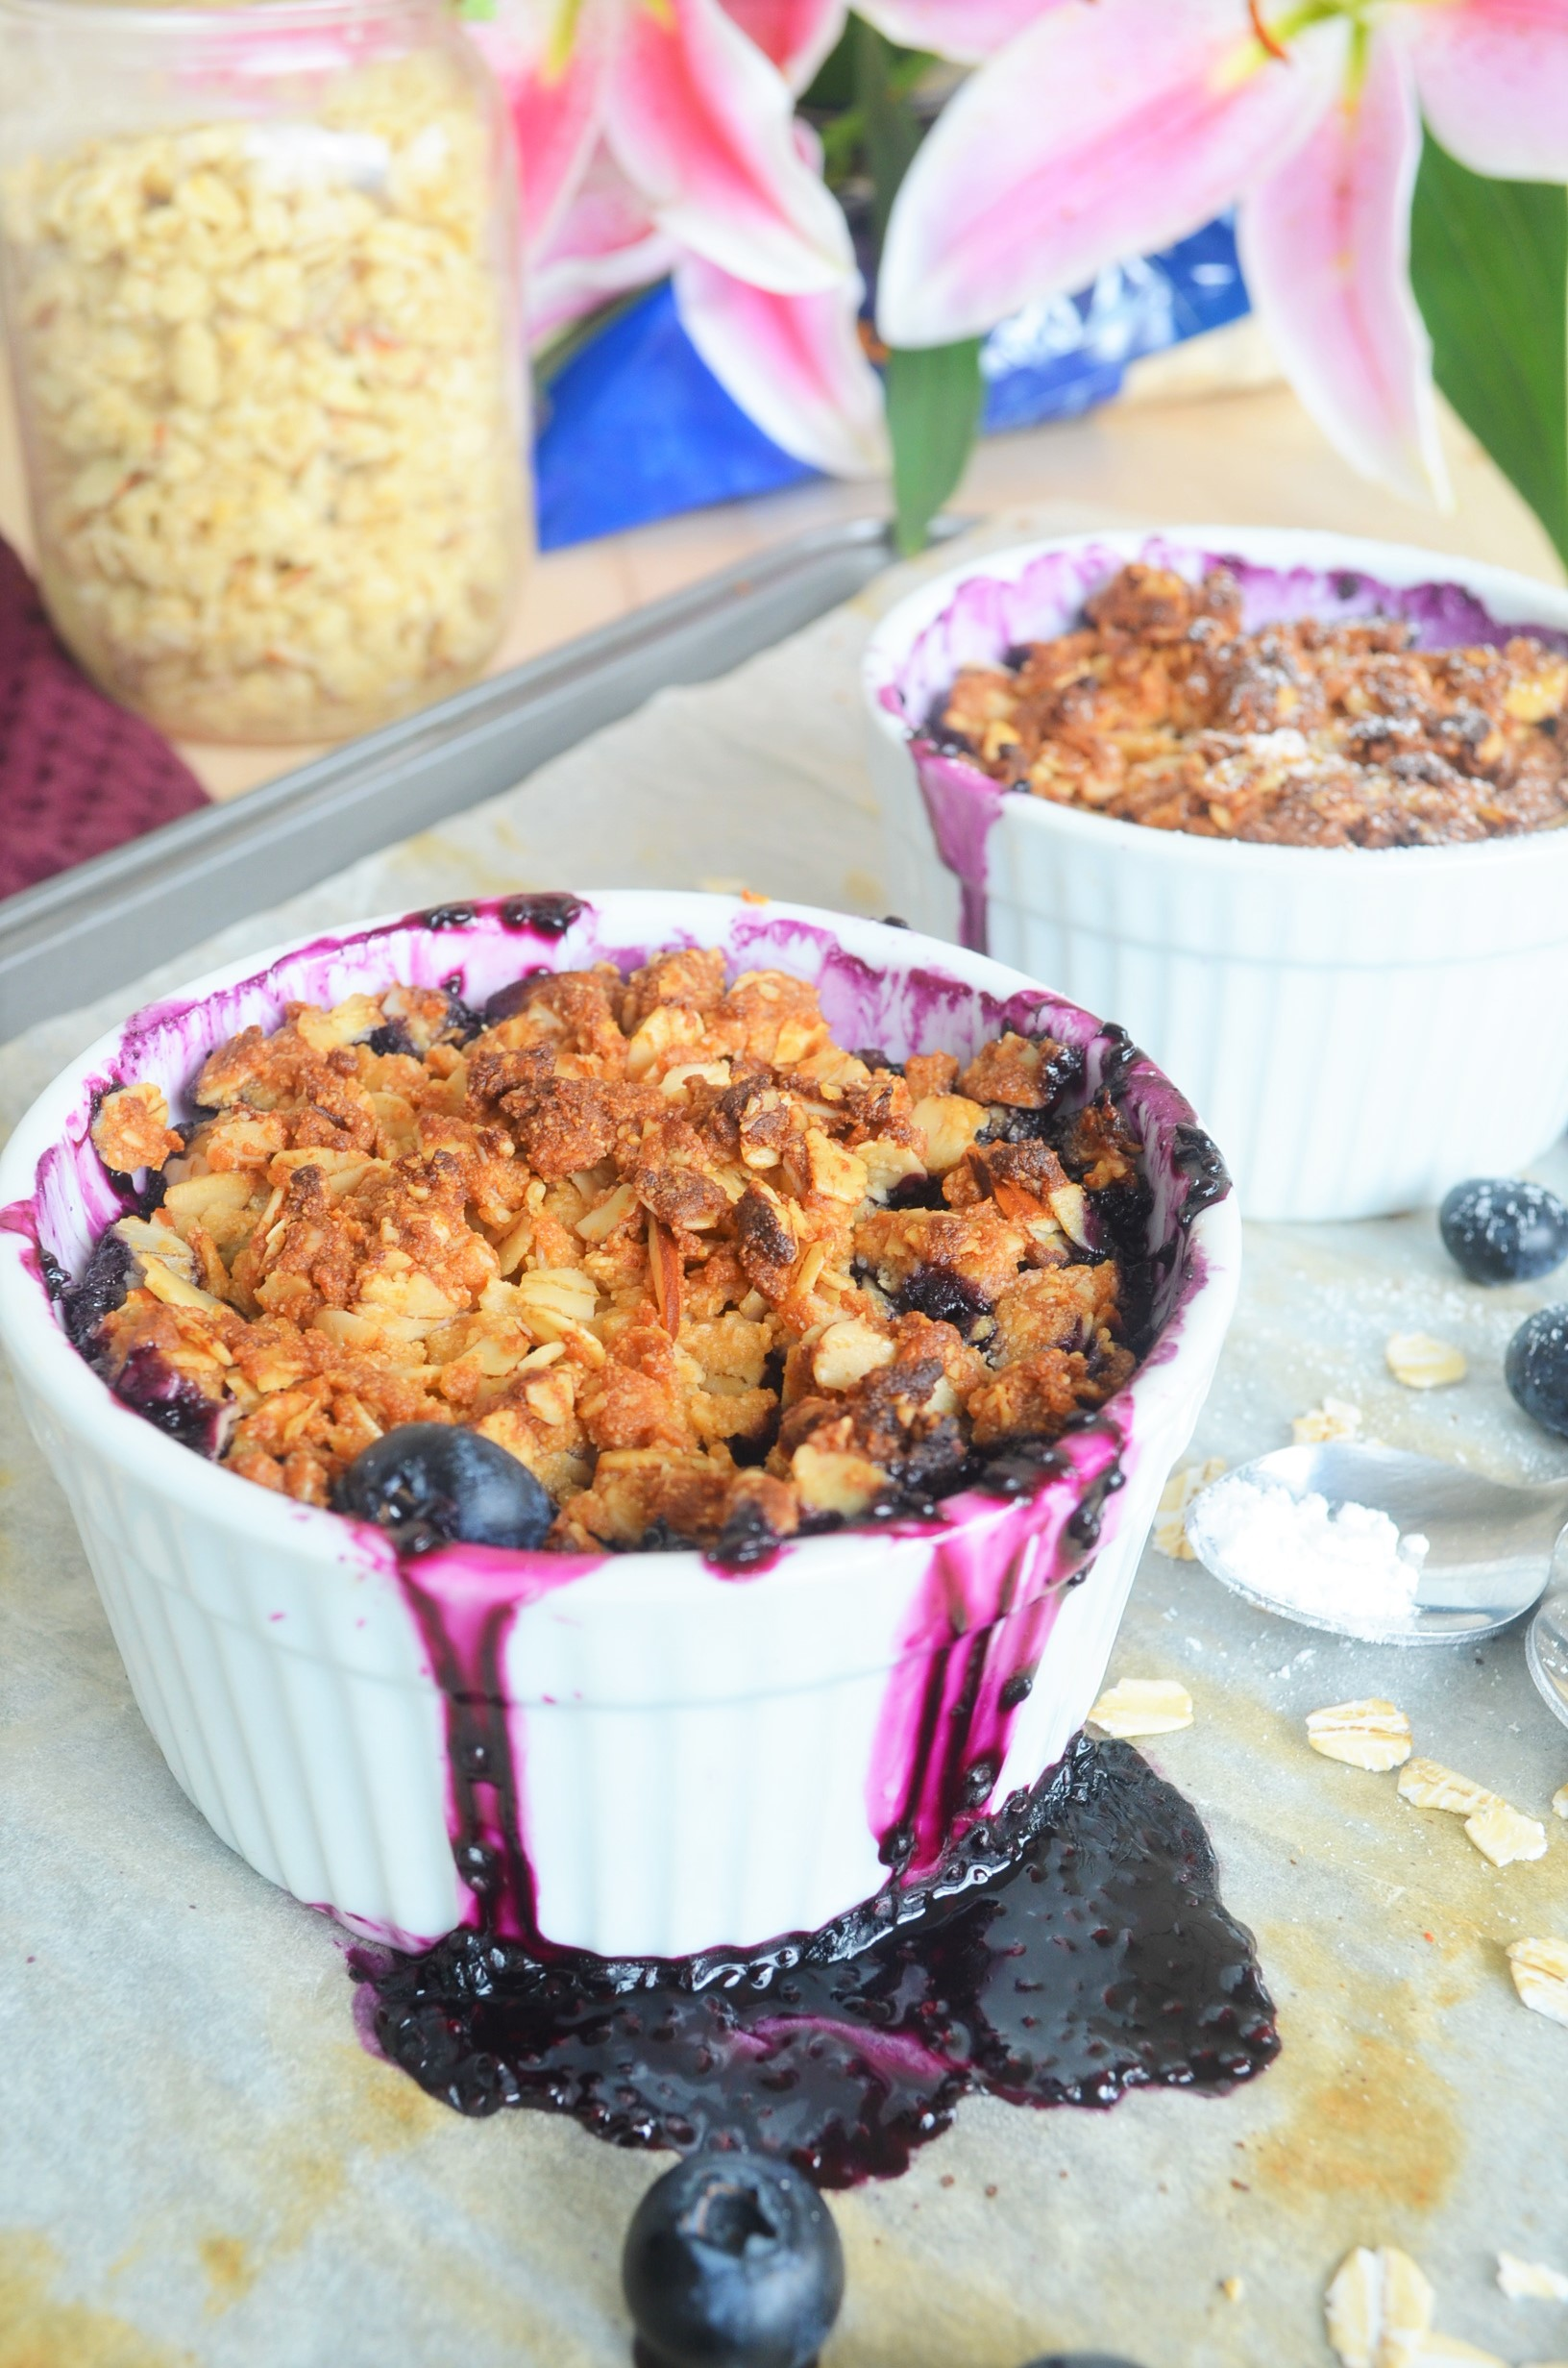 Small Batch Gluten Free and Vegan Blueberry Crisp For Two